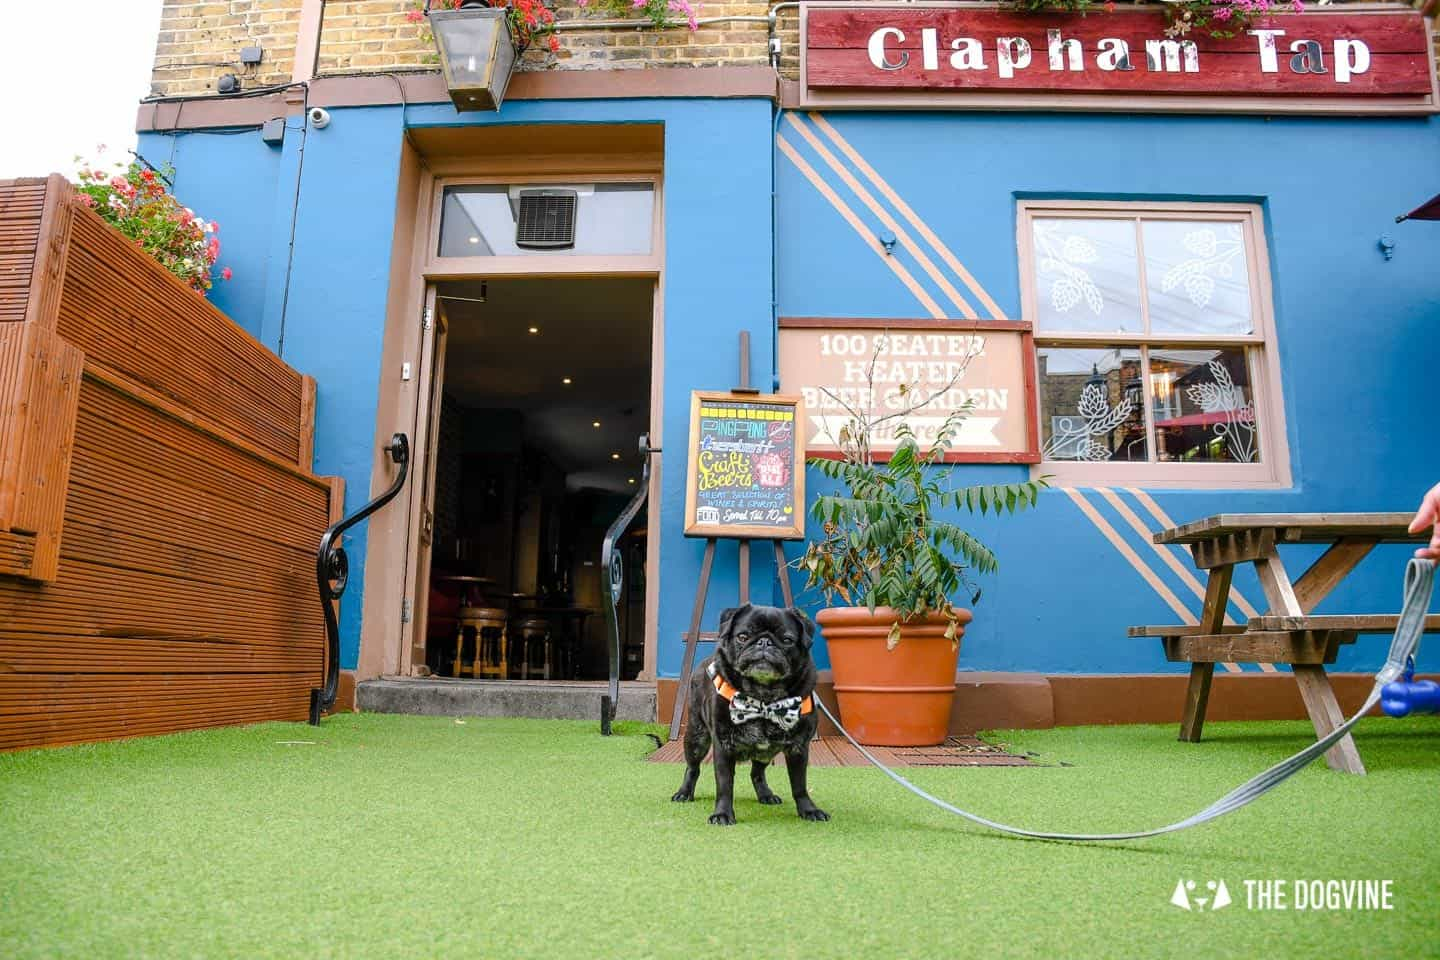 My Dog-friendly London Clapham & Battersea By Hemingway The Pug The Clapham Tap 8